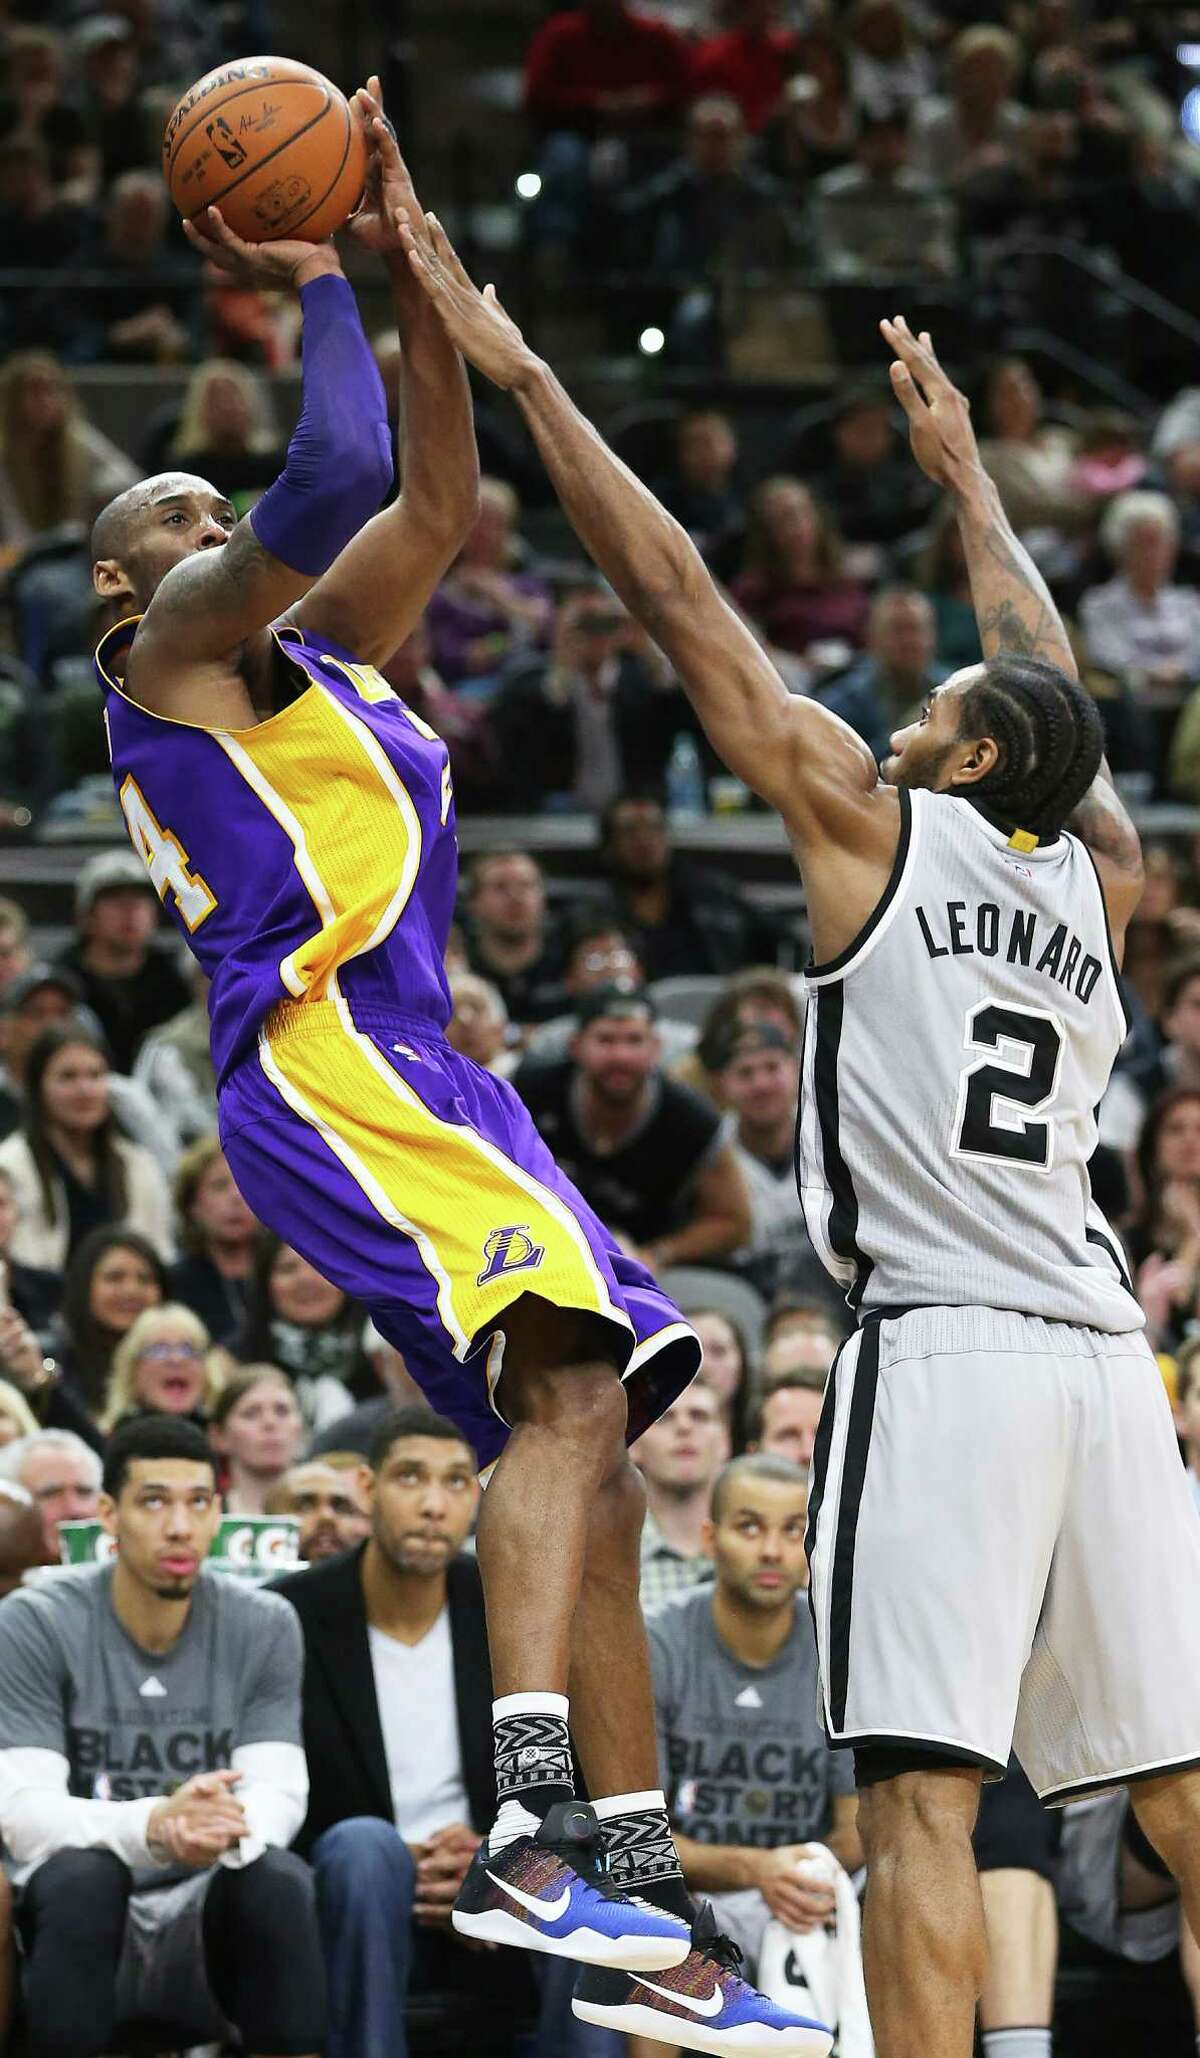 Kobe Bryant tries to squeeze a shot in from the corner against the pressure of Kawhi Leonard as the Spurs host the Lakers at the AT&T Center on February 6, 2016.